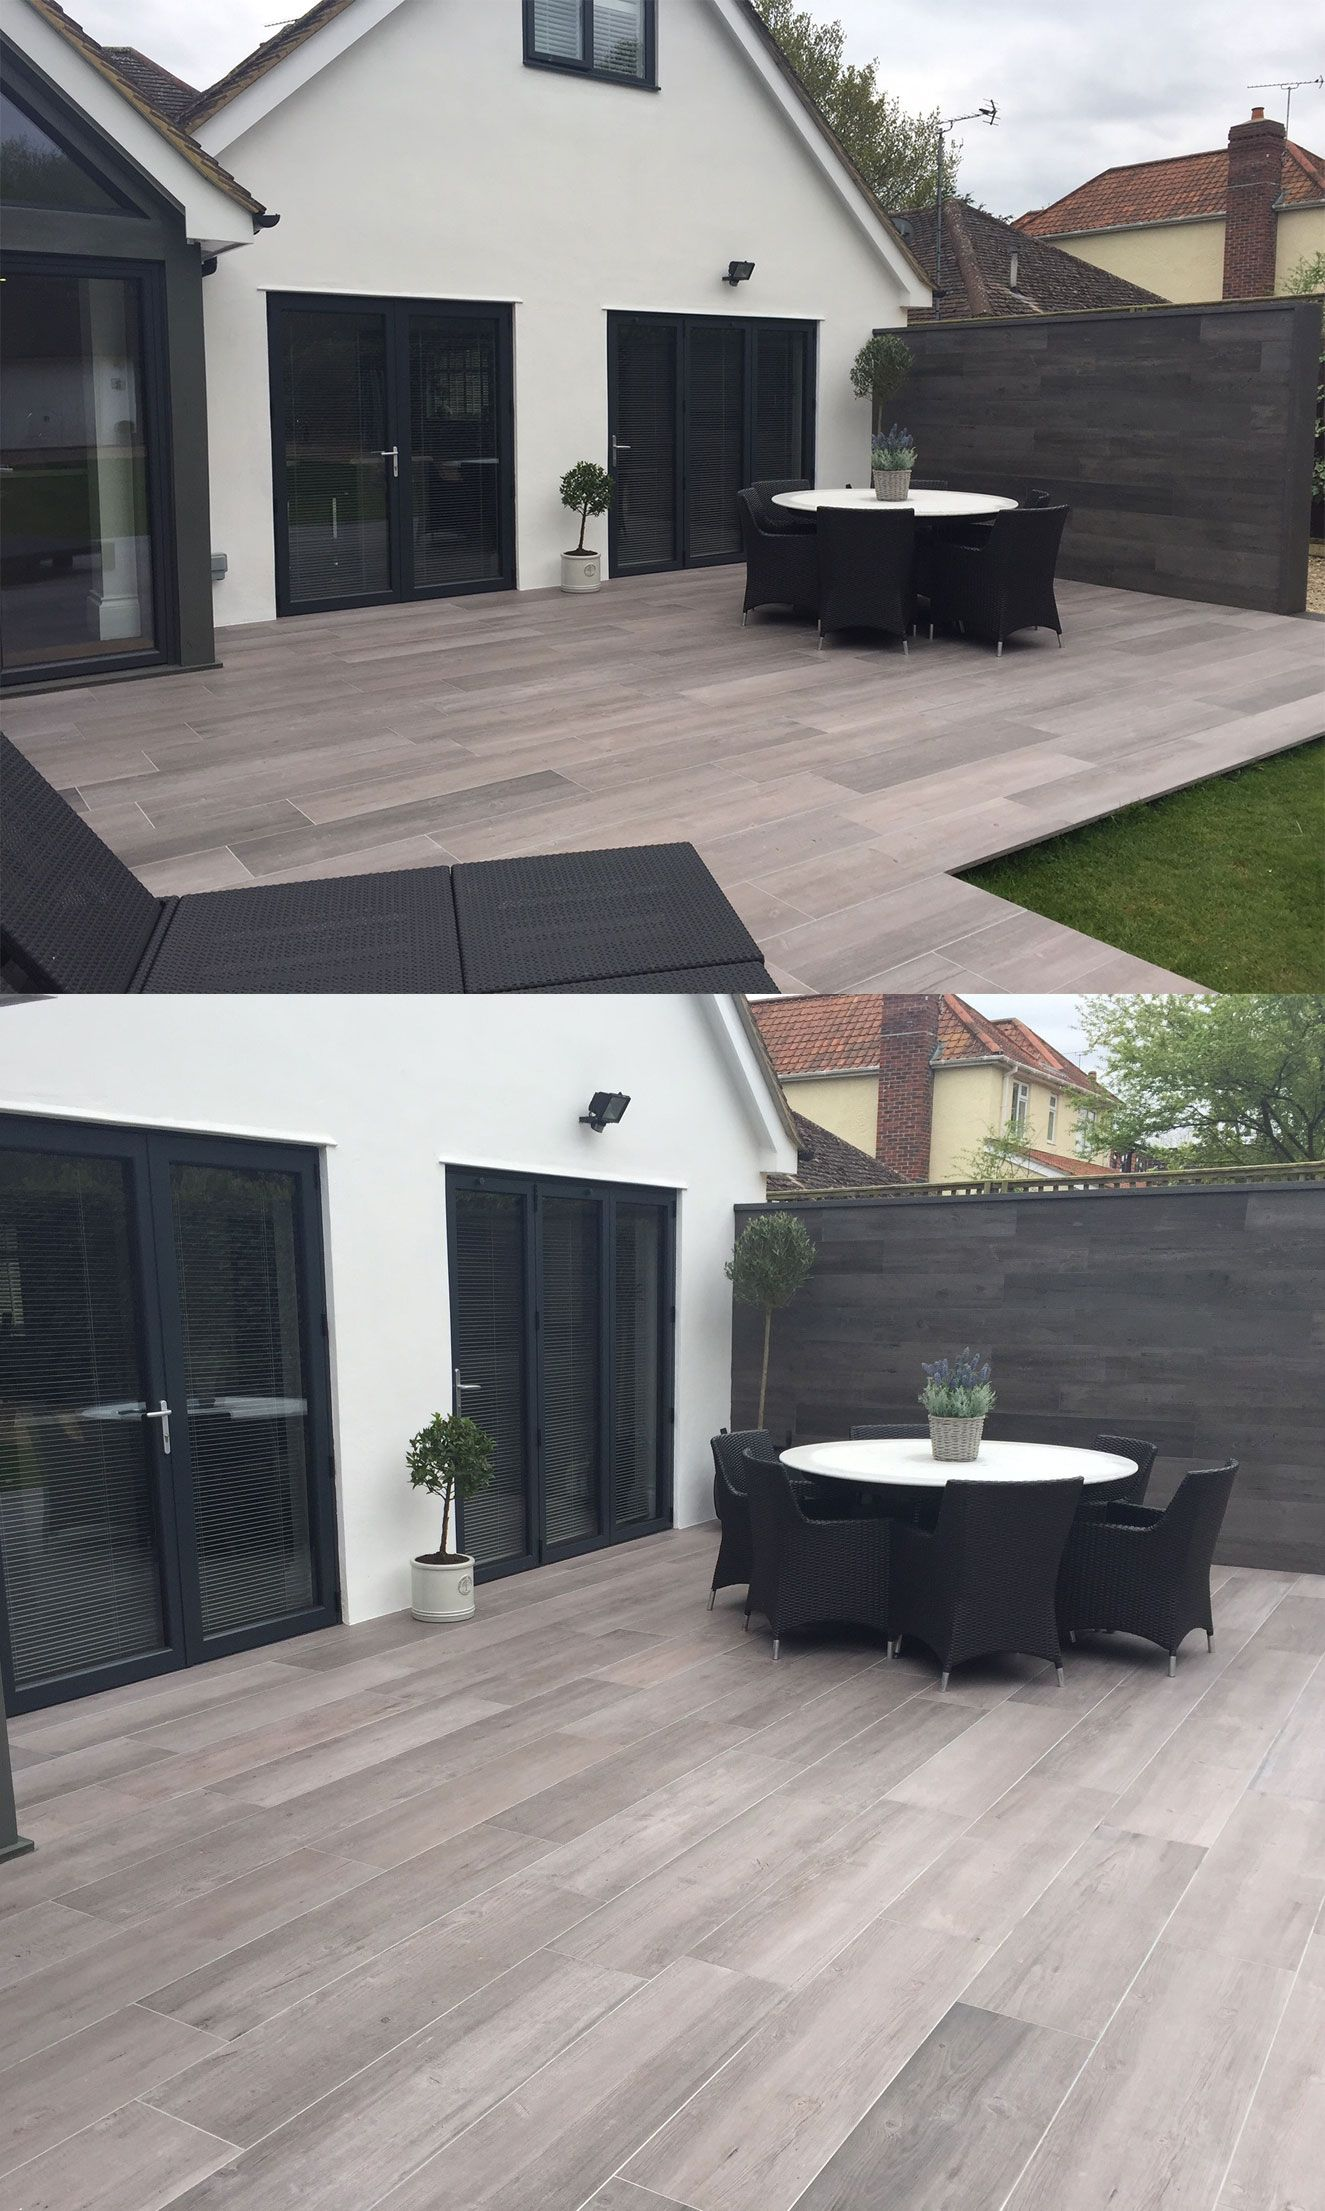 Great modern wood effect patio created using Valverdi Chalet tiles ...